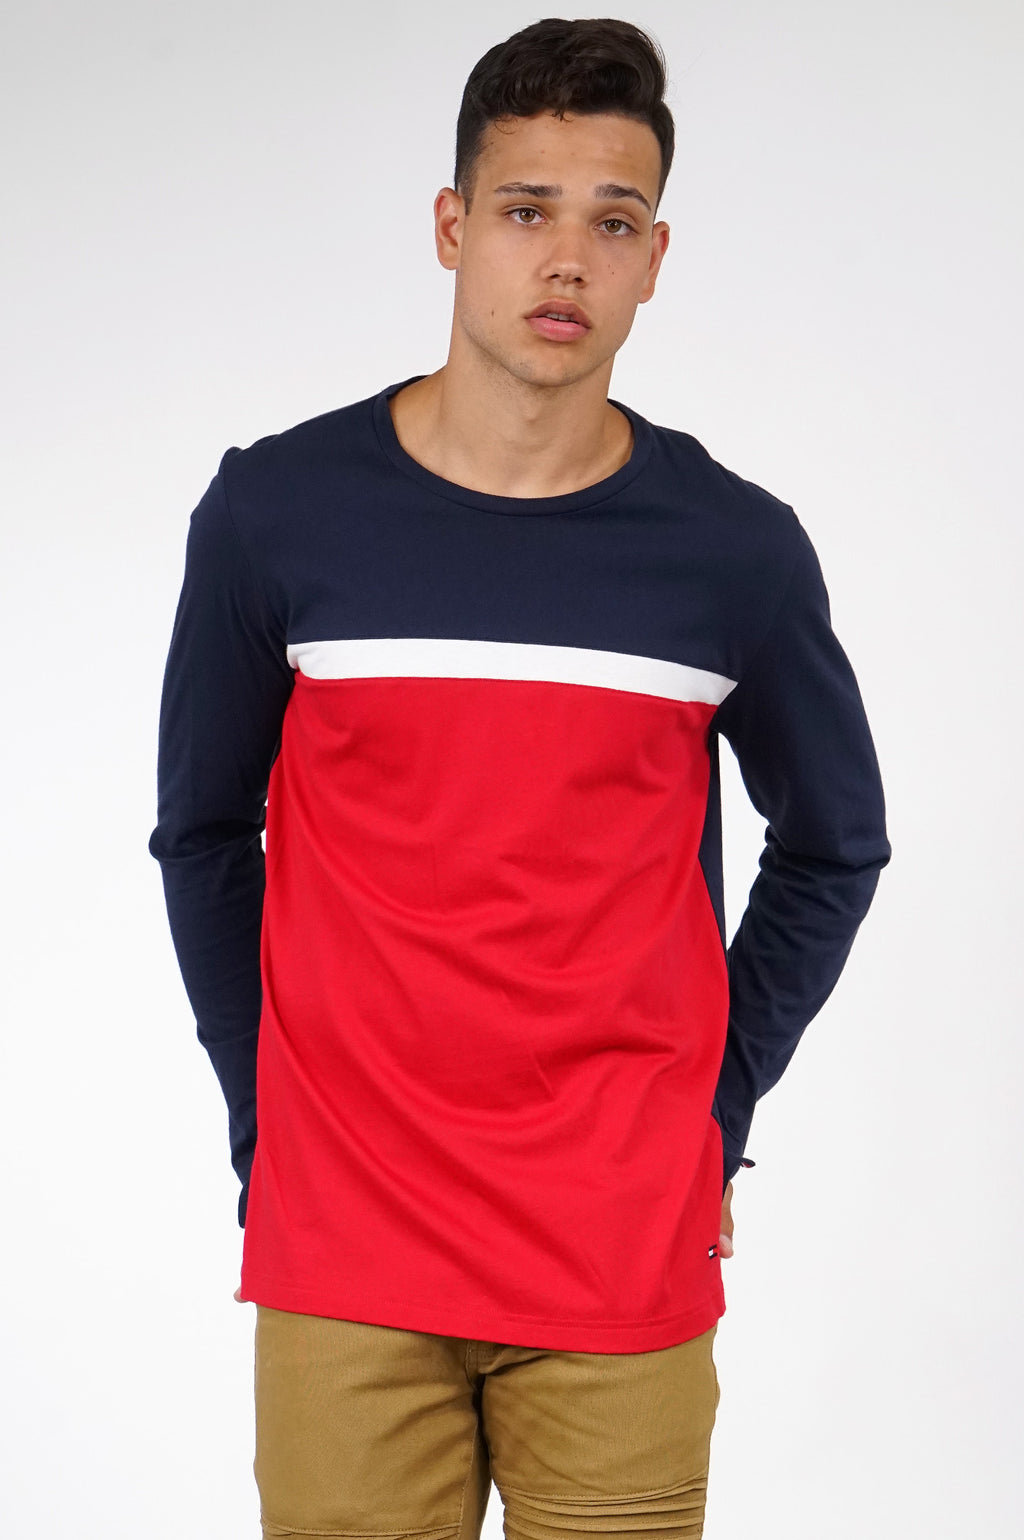 TOMMY HILFIGER LOUNGEWEAR MENS L/S LOGO ESSENTIALS TEE